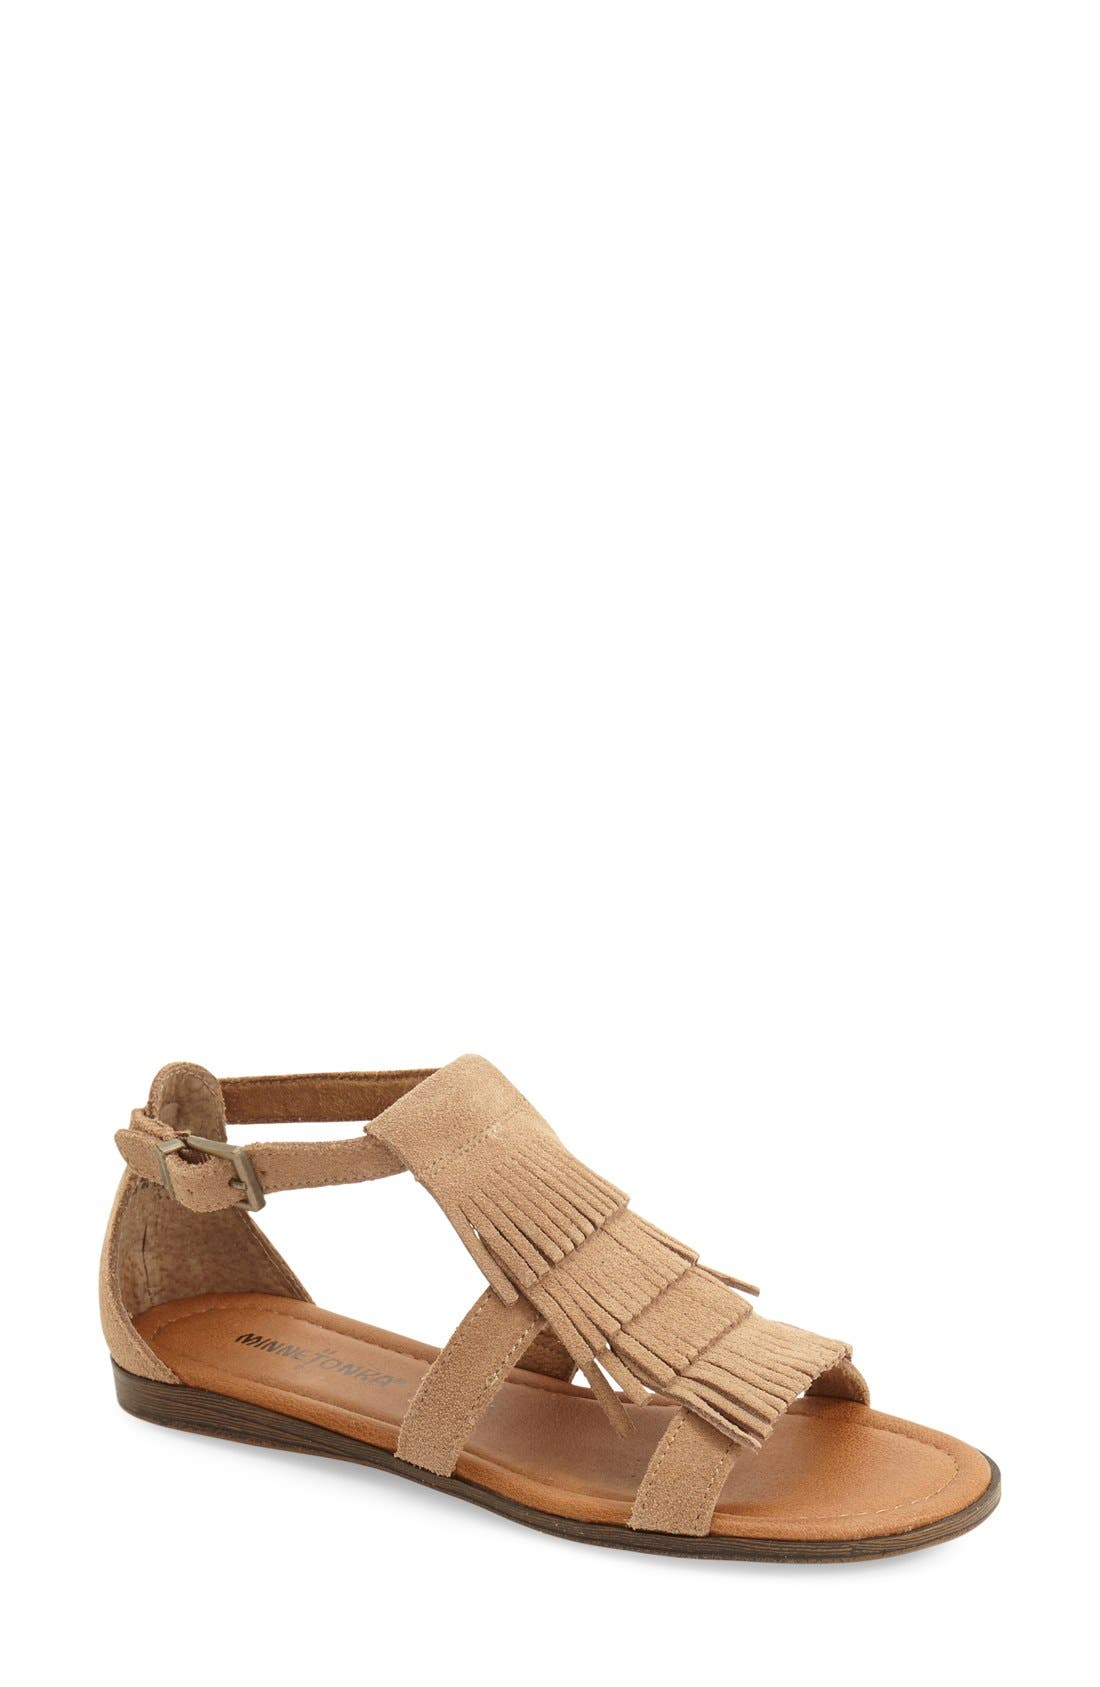 Alternate Image 1 Selected - Minnetonka 'Maui' Sandal